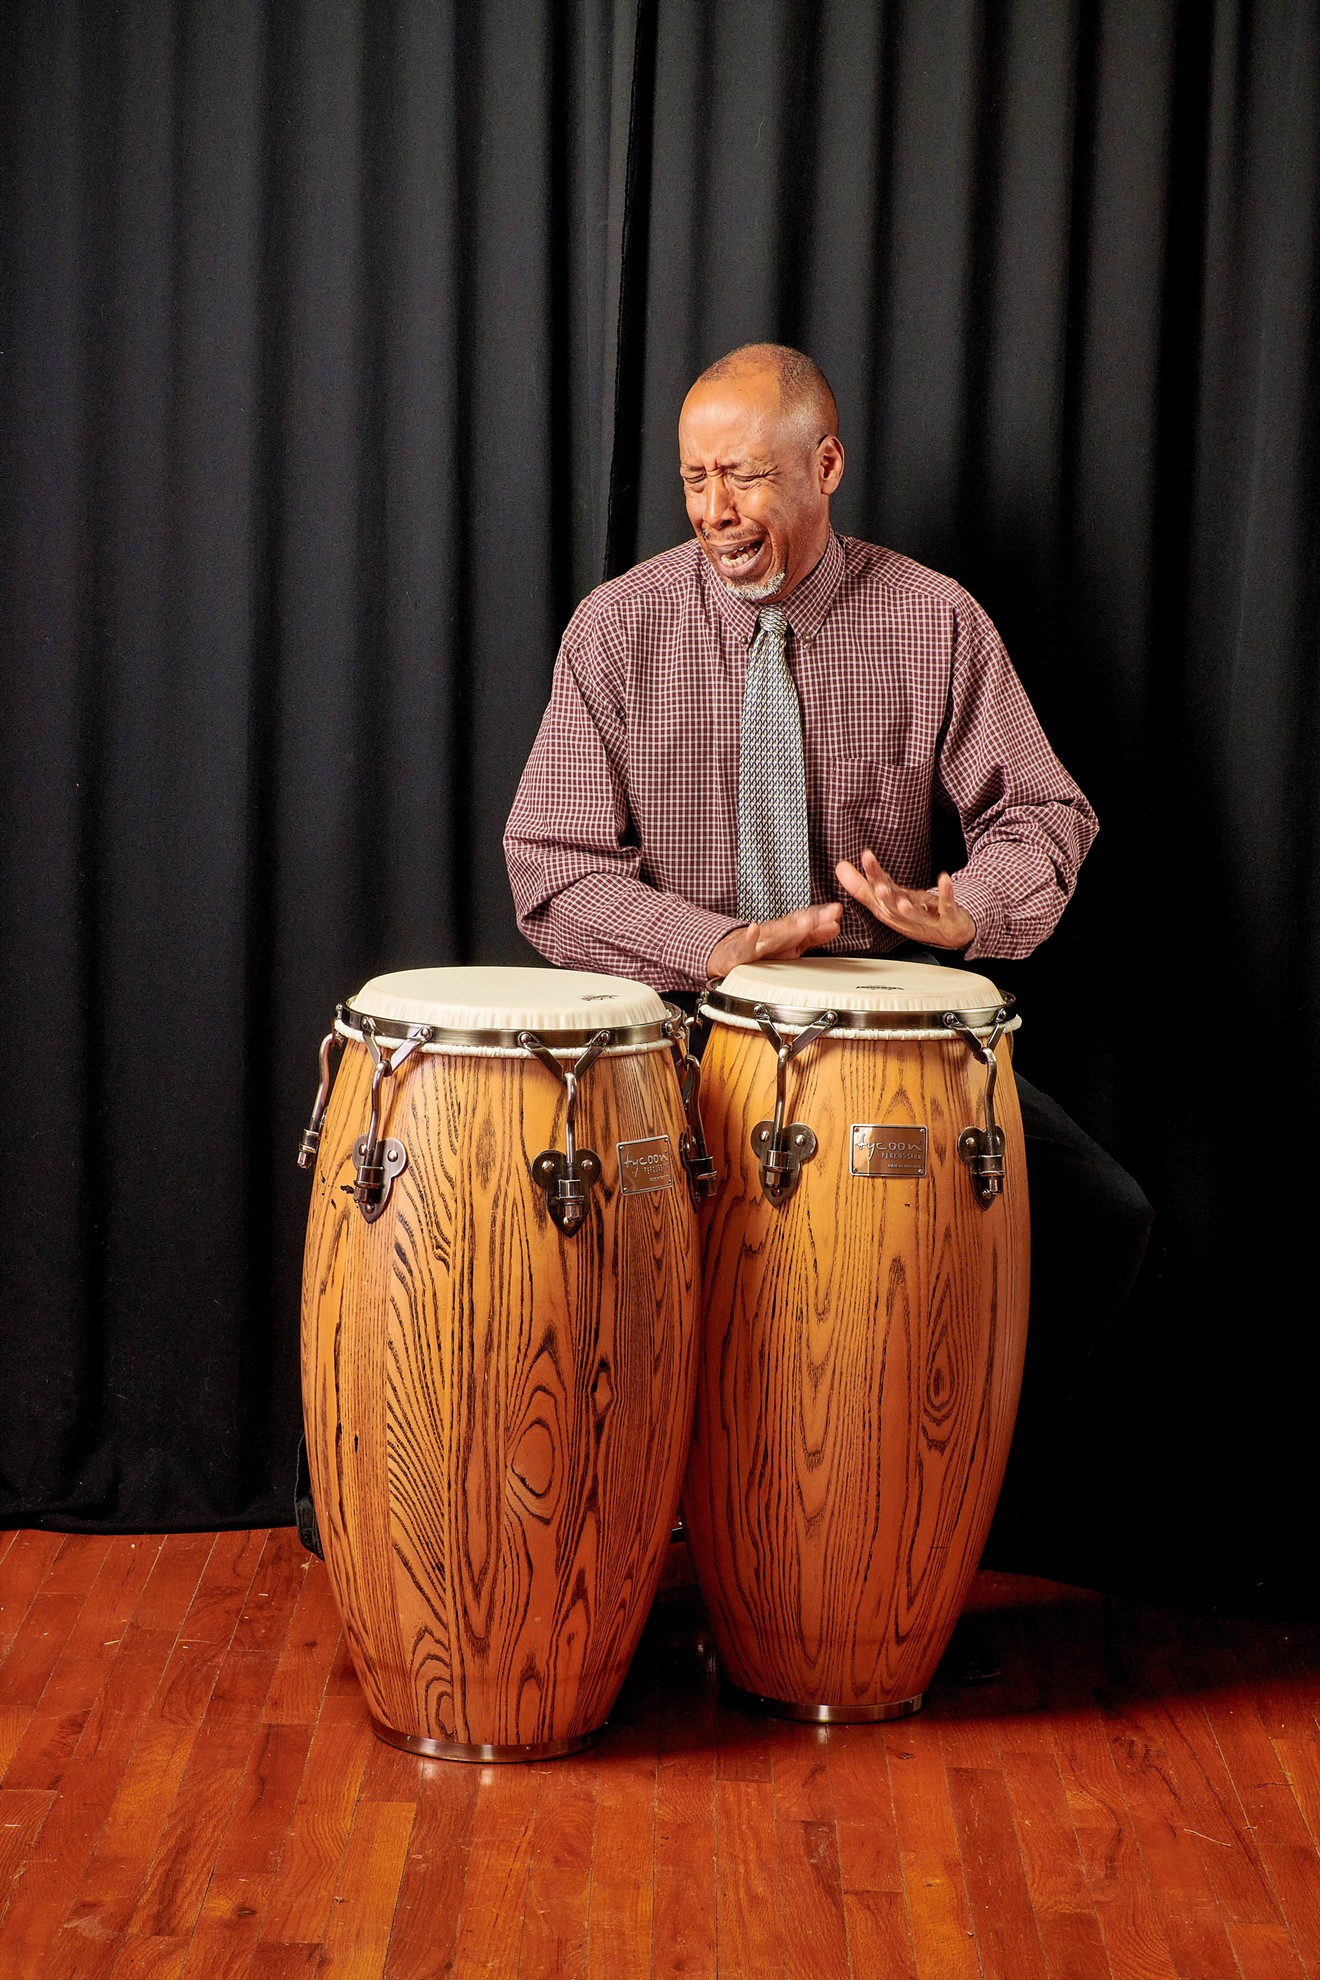 """Percussion king Terry """"Doc"""" Handy infuses Latin jazz and R&B into his sounds during a live performance. Catch Doc Handy this year at the Savannah Jazz Festival."""